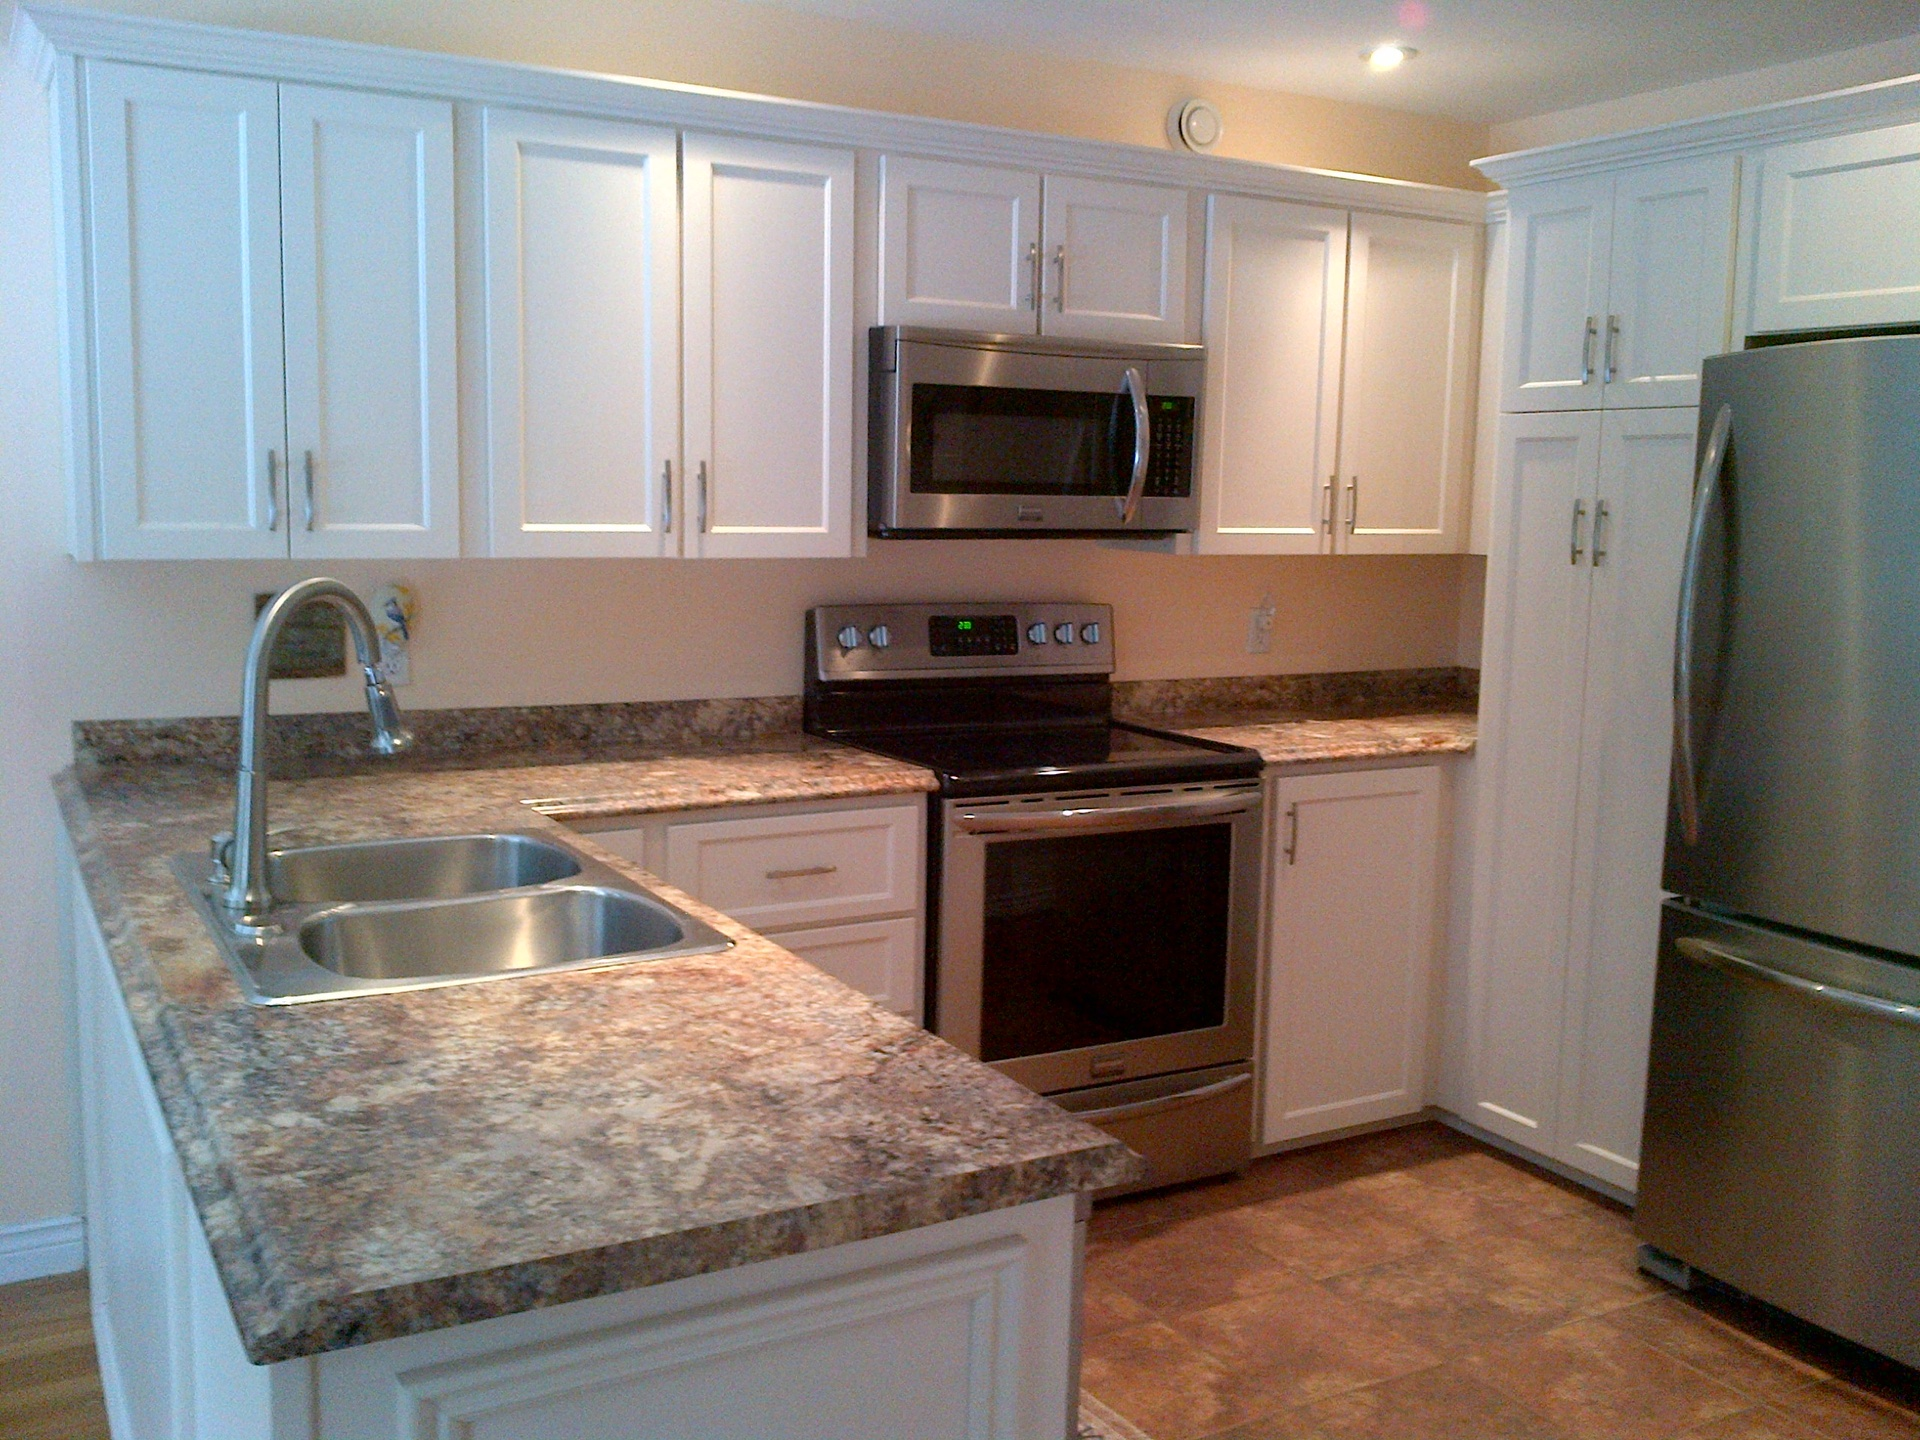 KItchen Refacing Before and After s by Robert Stack